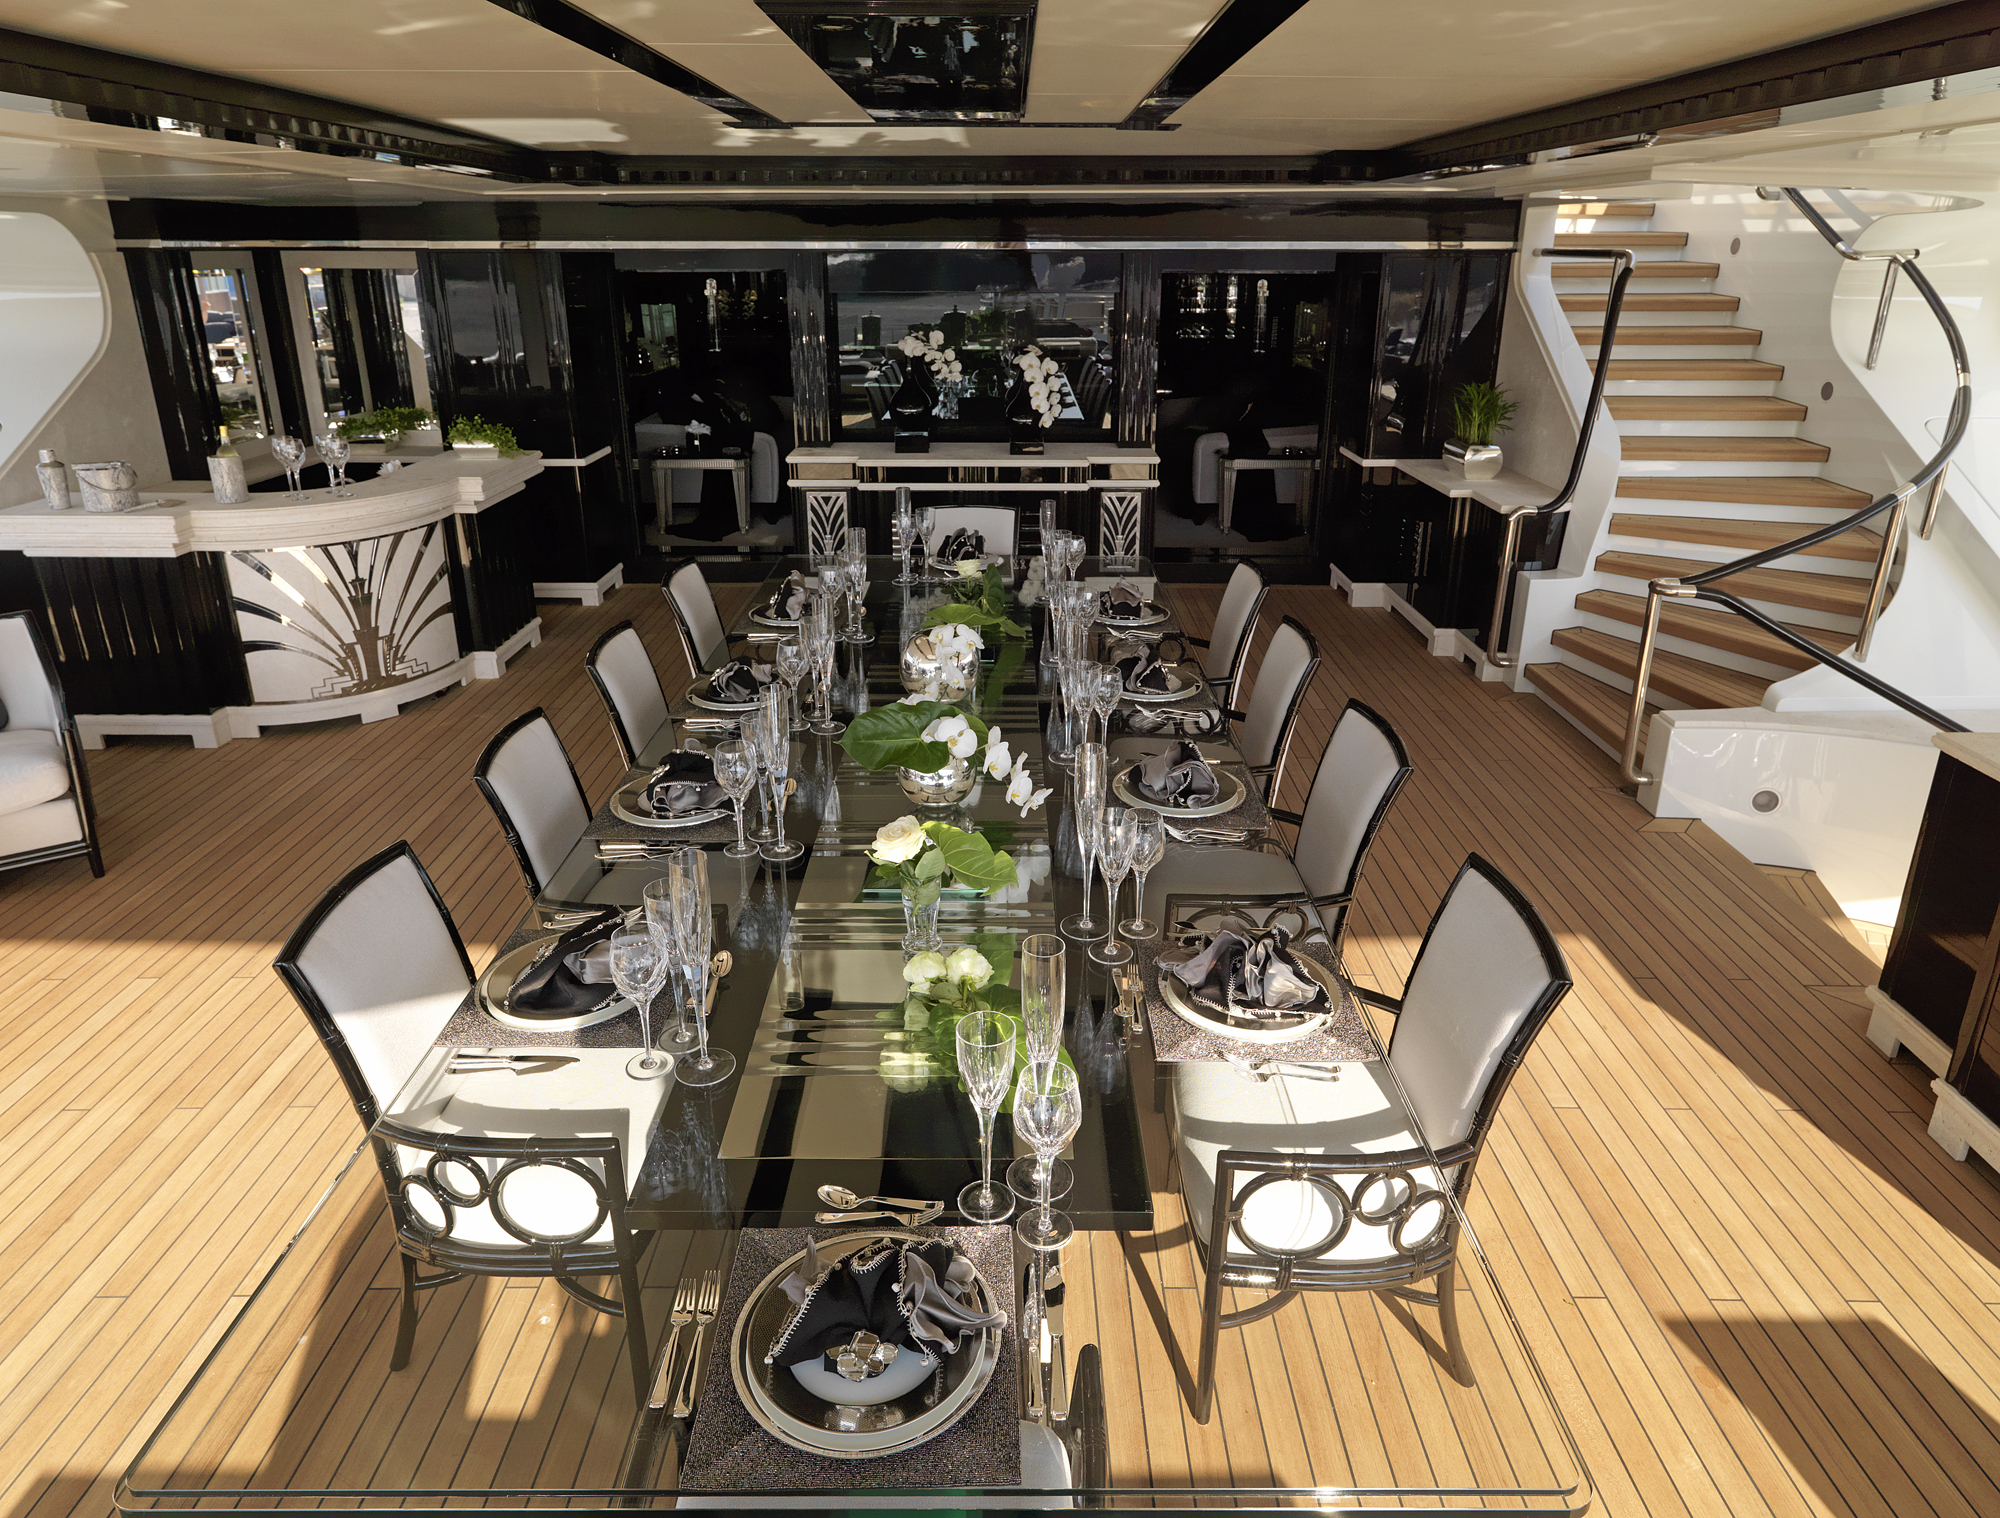 Beautiful dining area on the bridge deck